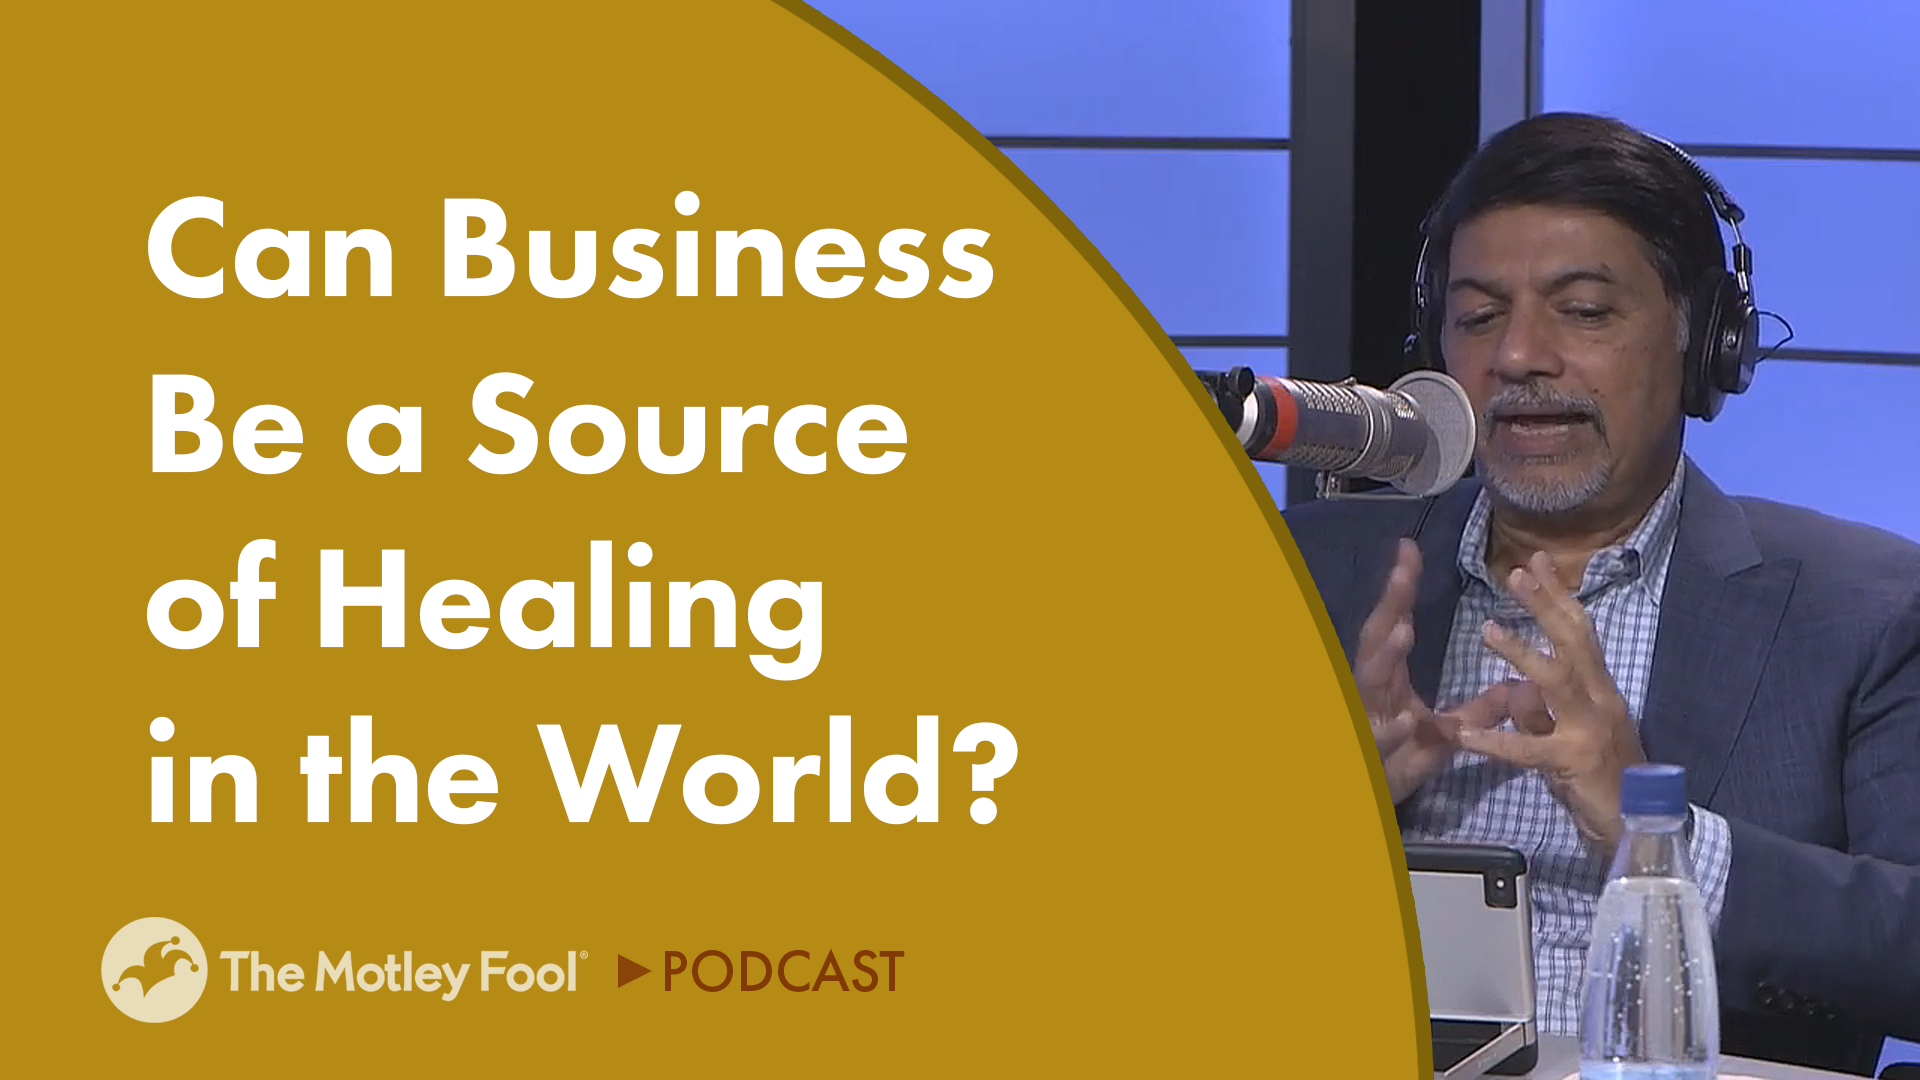 Can Business Be a Source of Healing in the World?